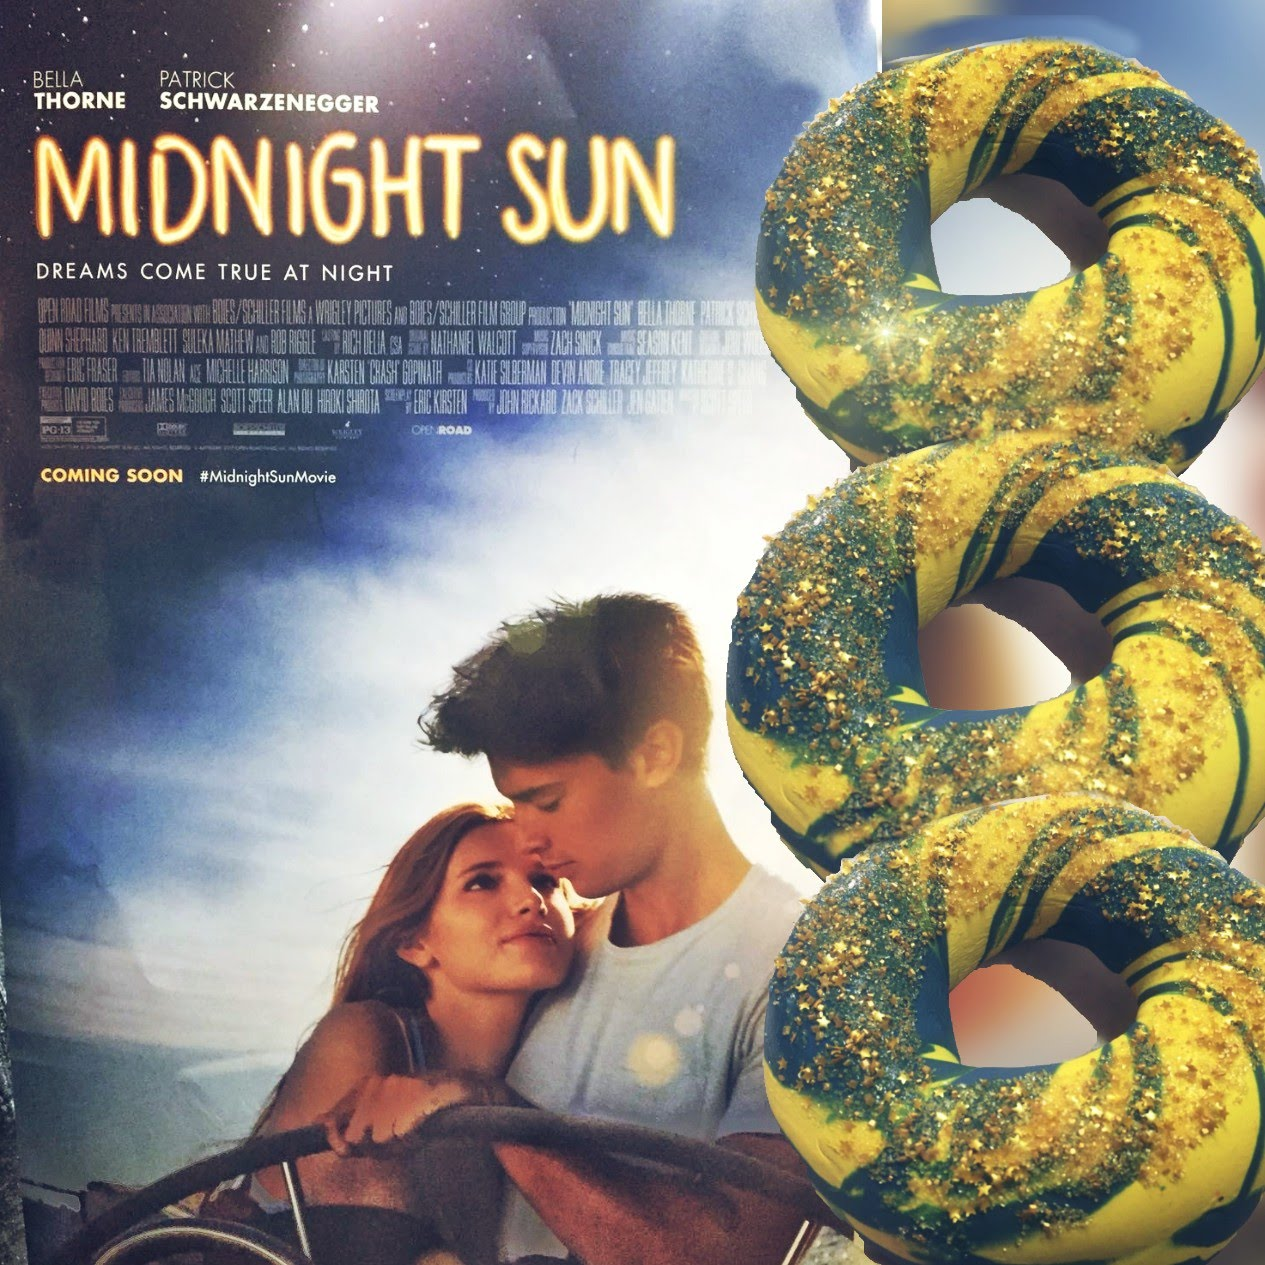 midnight sun movie custom bagel art